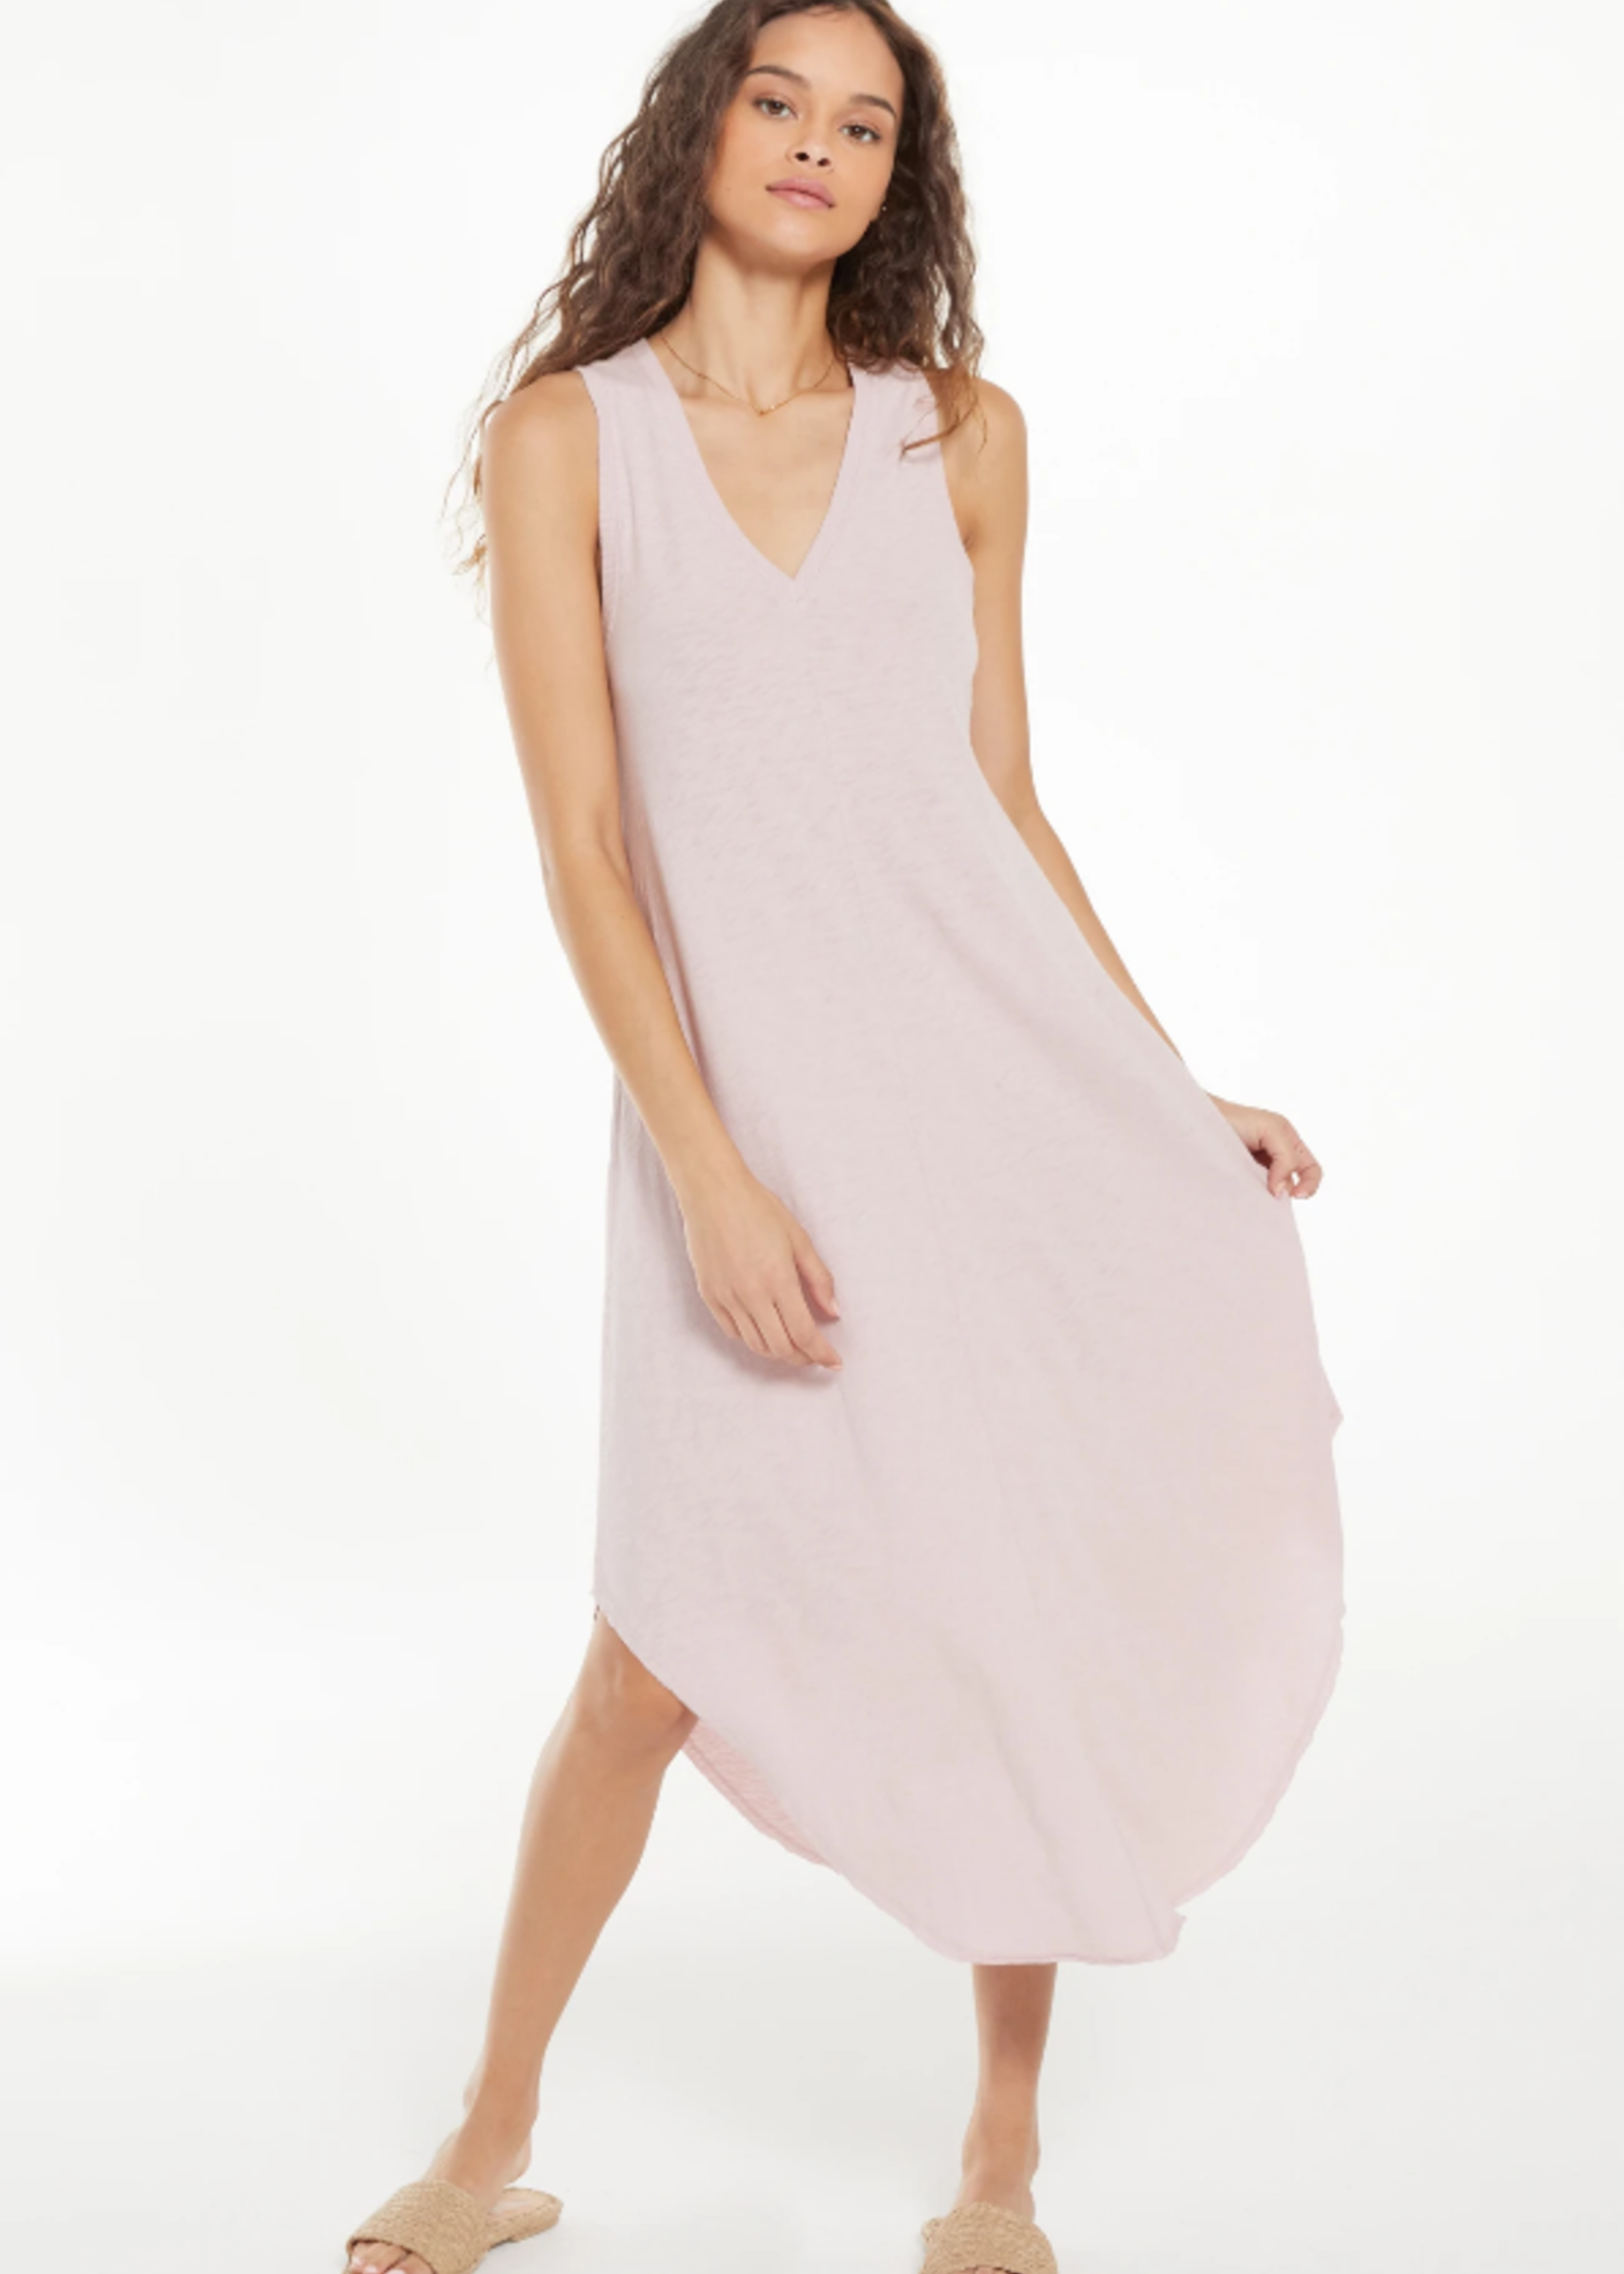 Z Supply Reverie Dress - Lilac